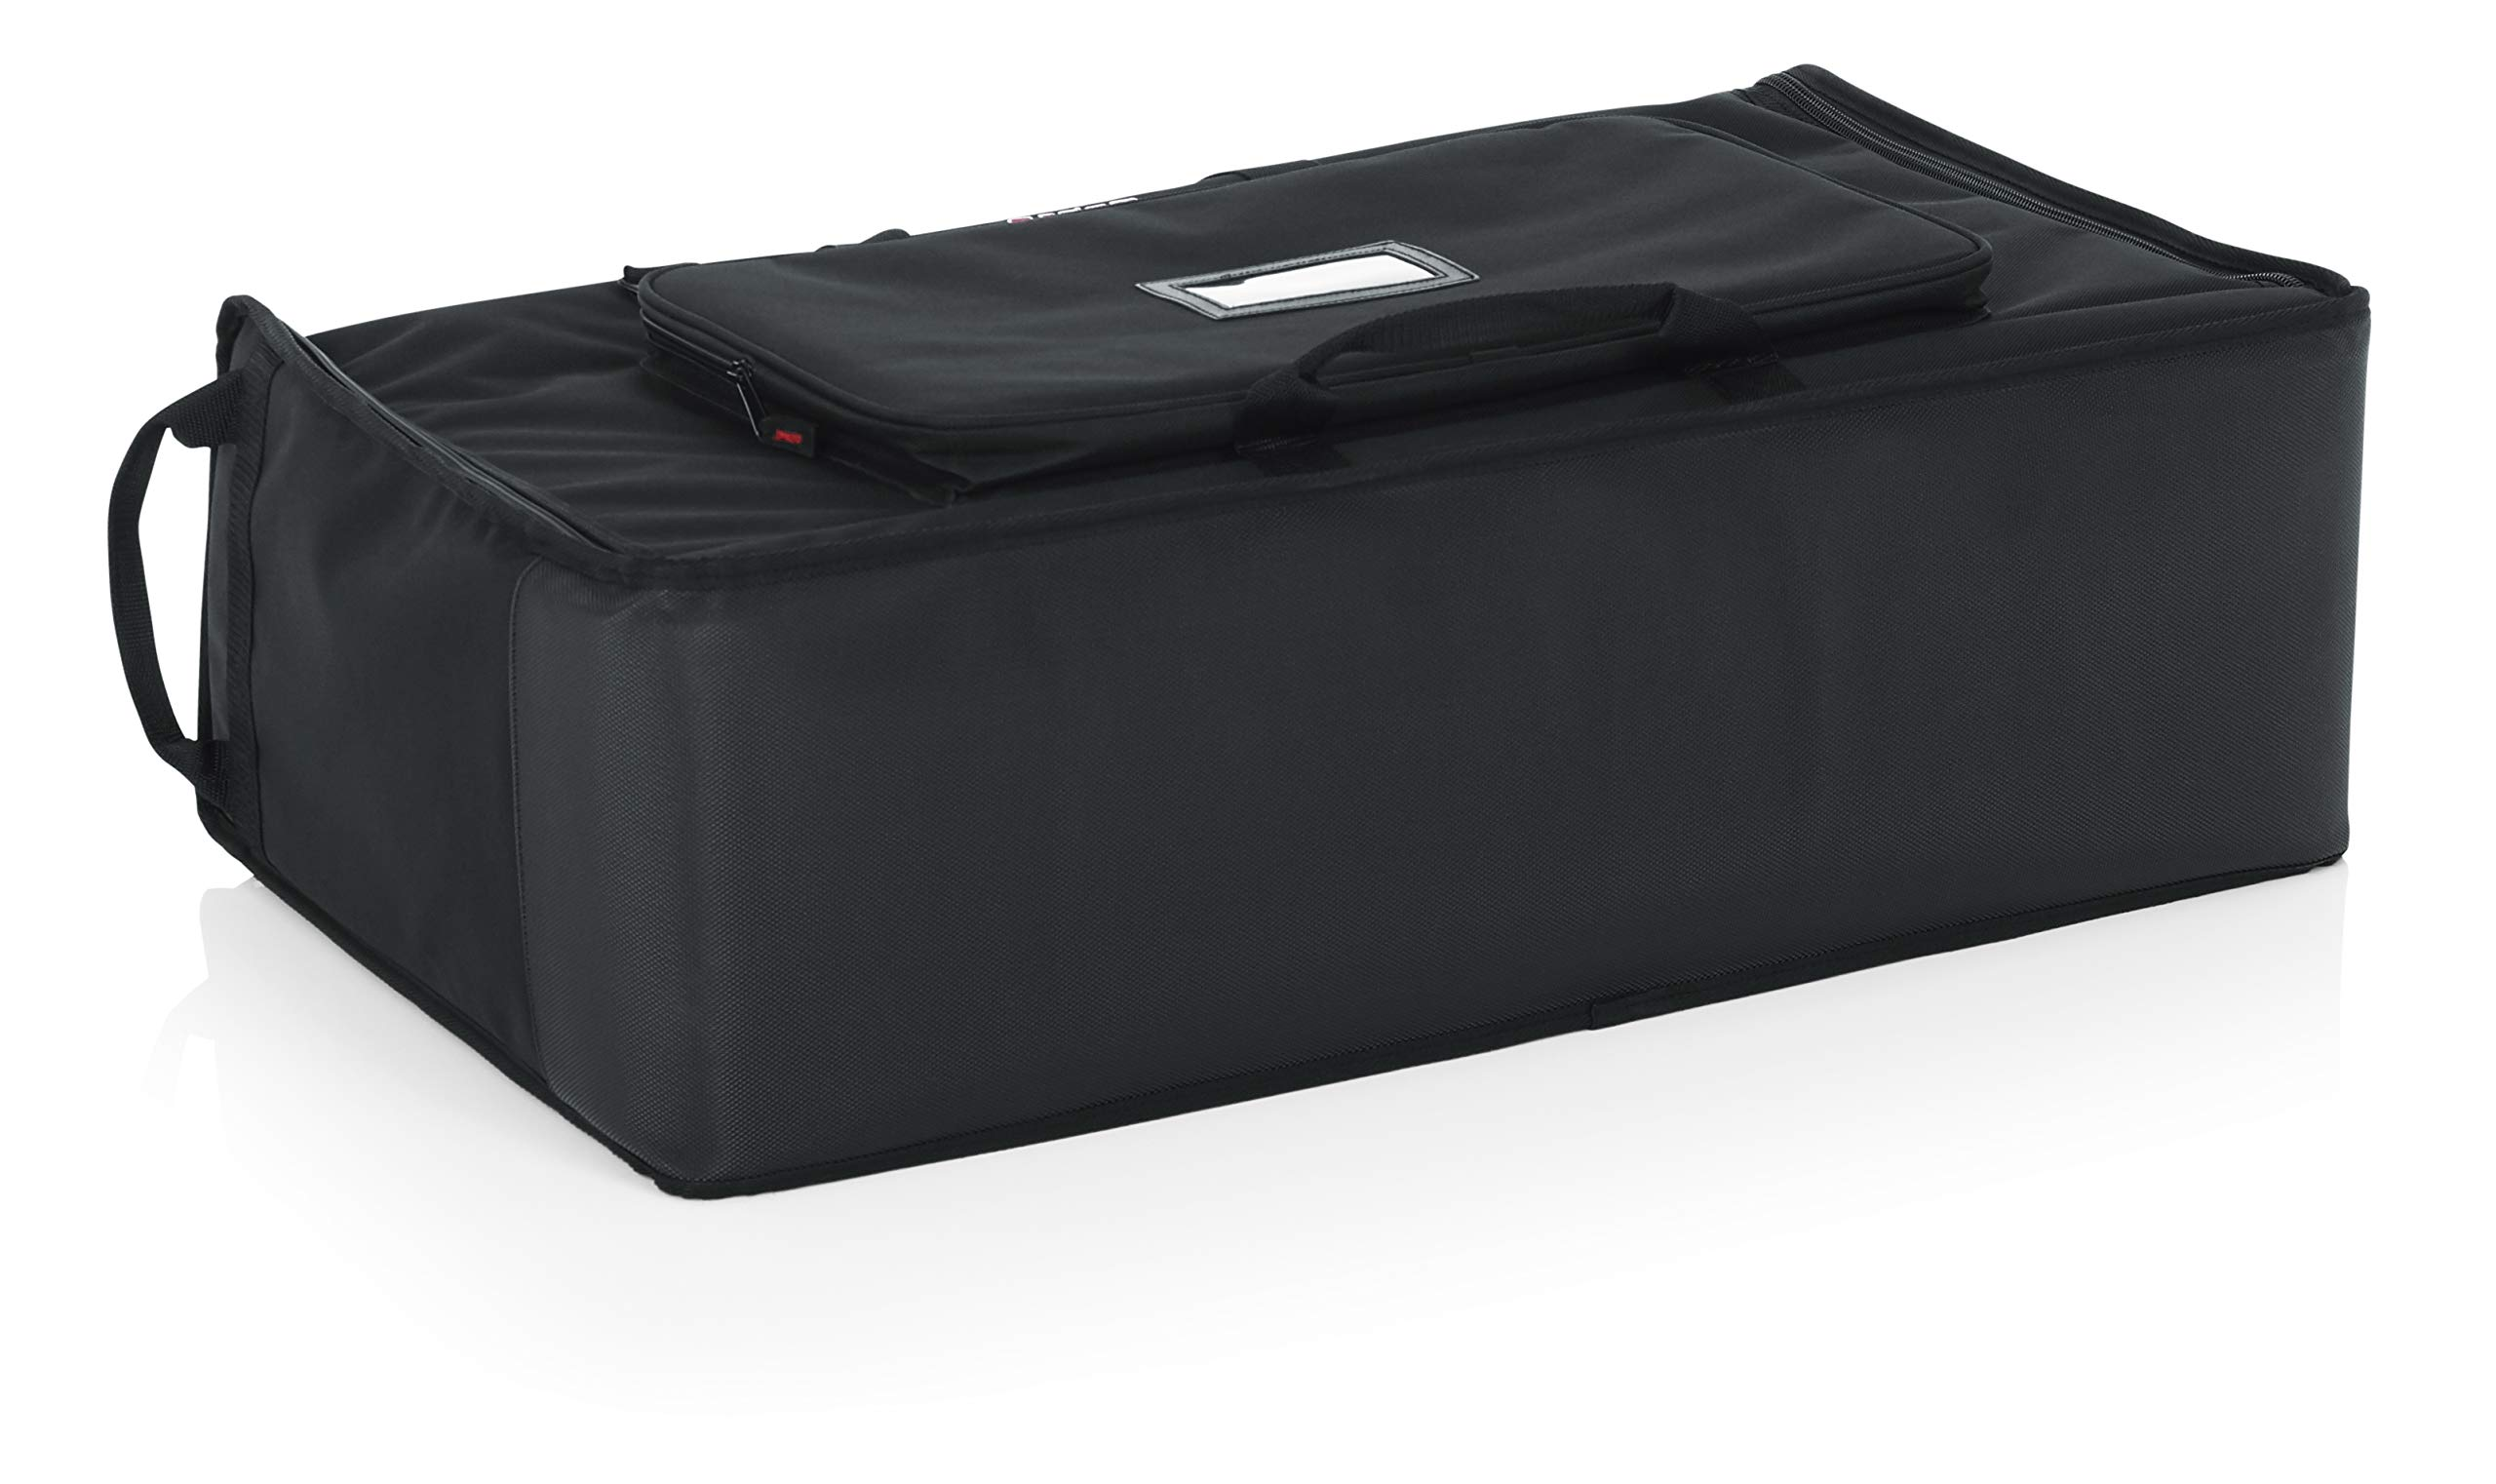 Gator Cases Padded Nylon Dual Carry Tote Bag for Transporting (2) LCD Screens, Monitors and TVs Between 27'' - 32''; (G-LCD-TOTE-MDX2) by Gator (Image #12)